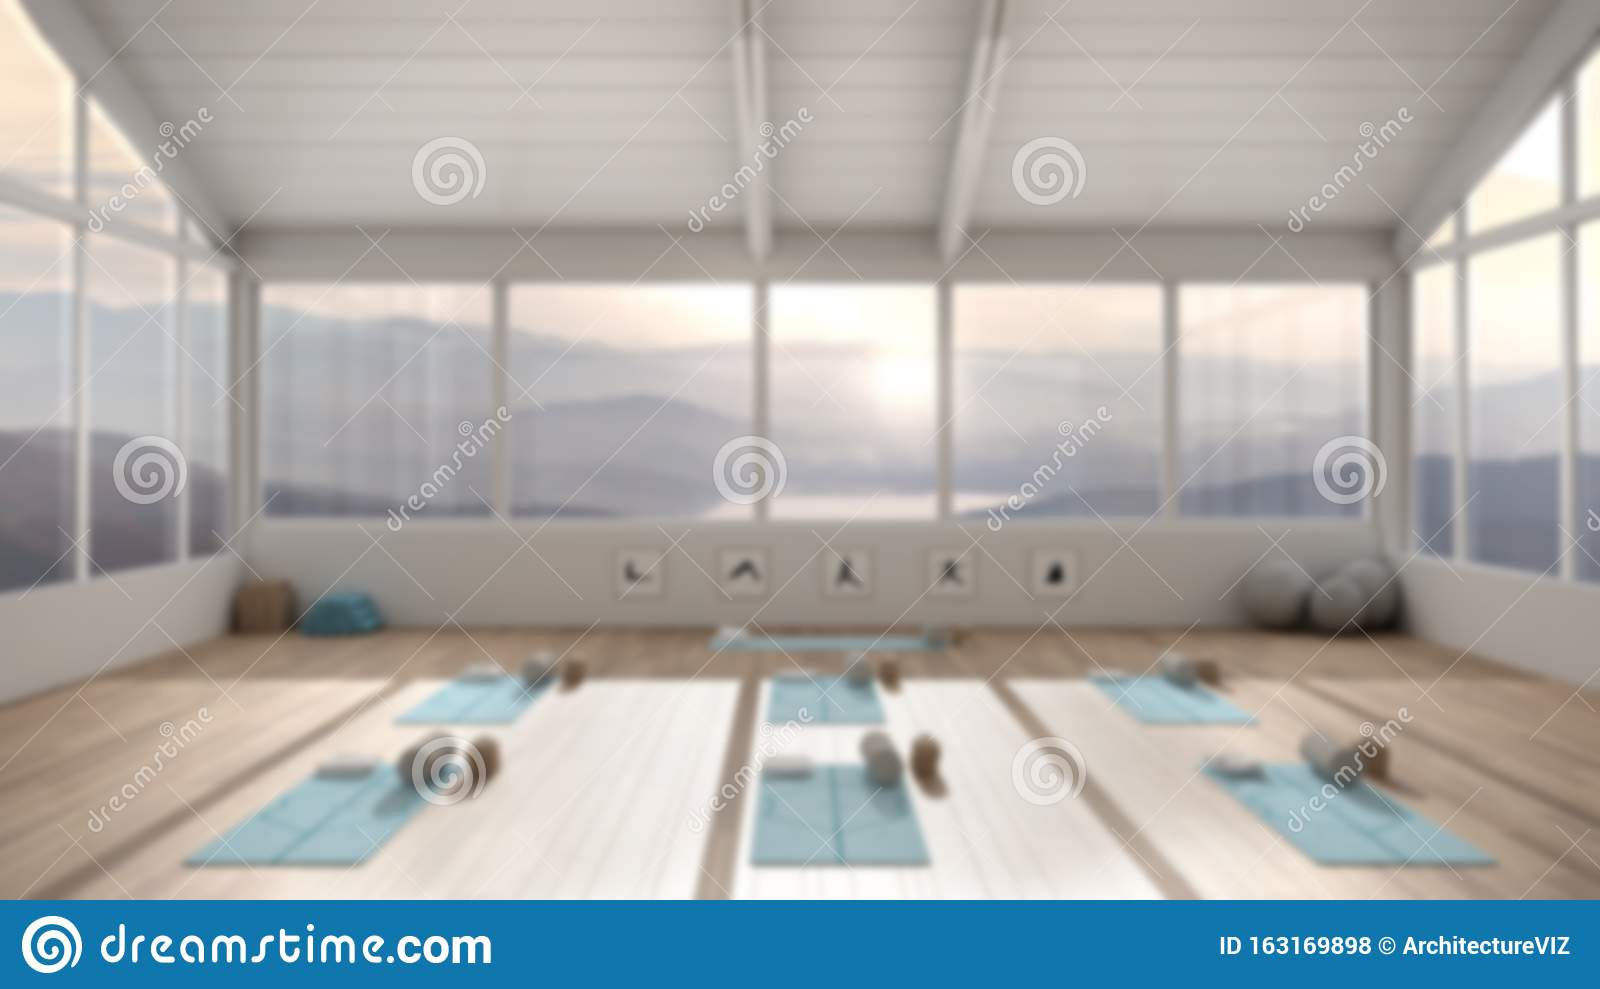 Blur Background Interior Design Empty Yoga Studio Architecture Spatial Organization With Mats And Accessories Panoramic Window Stock Illustration Illustration Of Bright Lifestyle 163169898